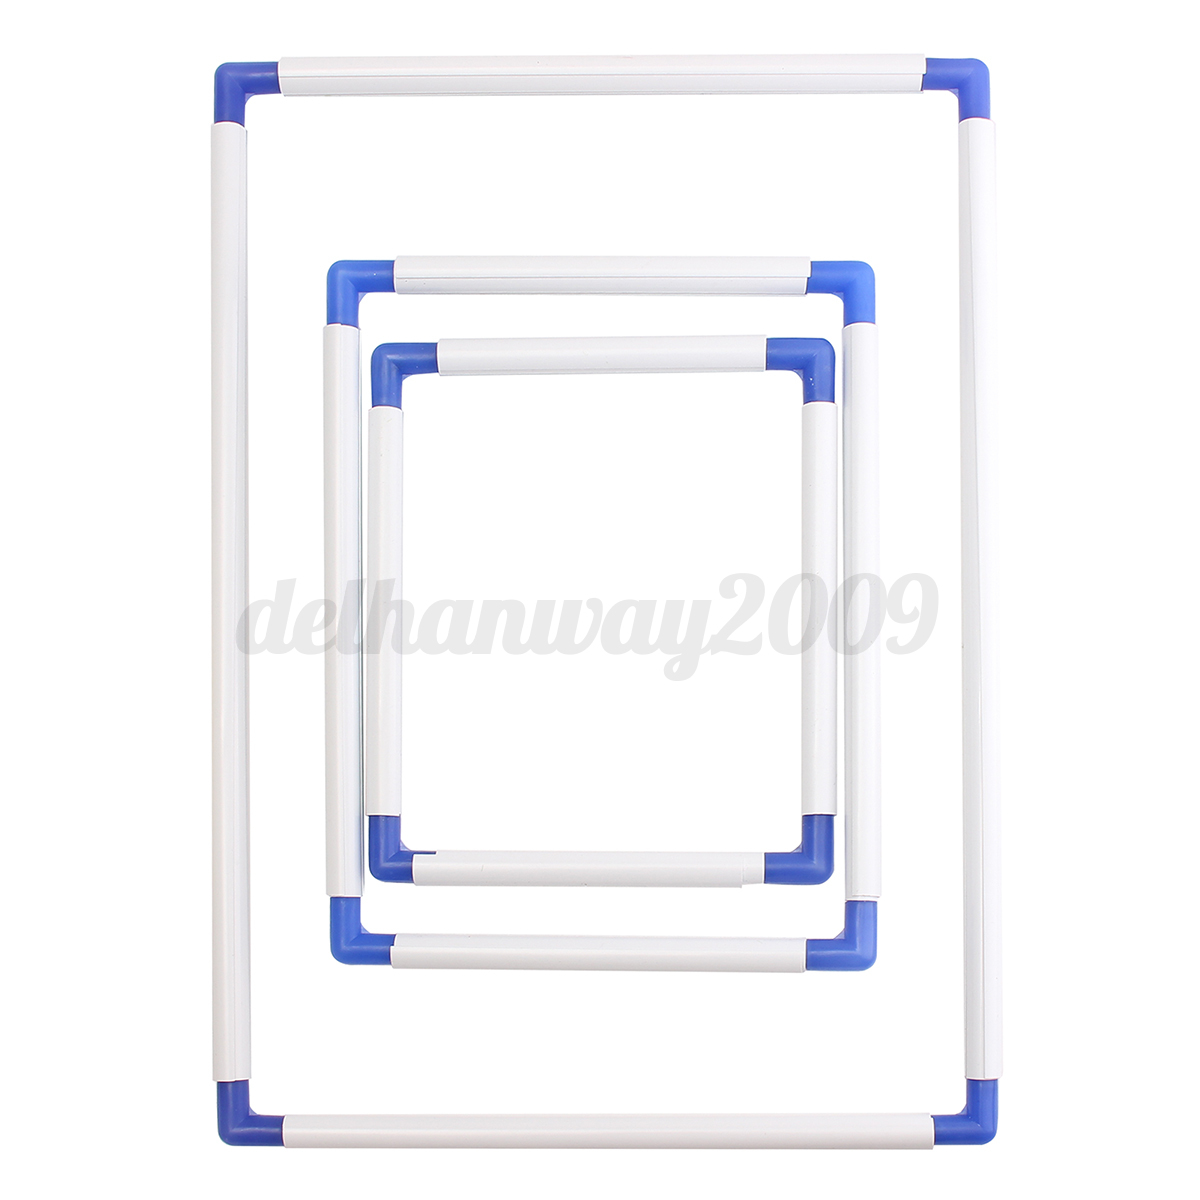 Cross Stitch Embroidery Frame Plastic Holder Hoops Stand